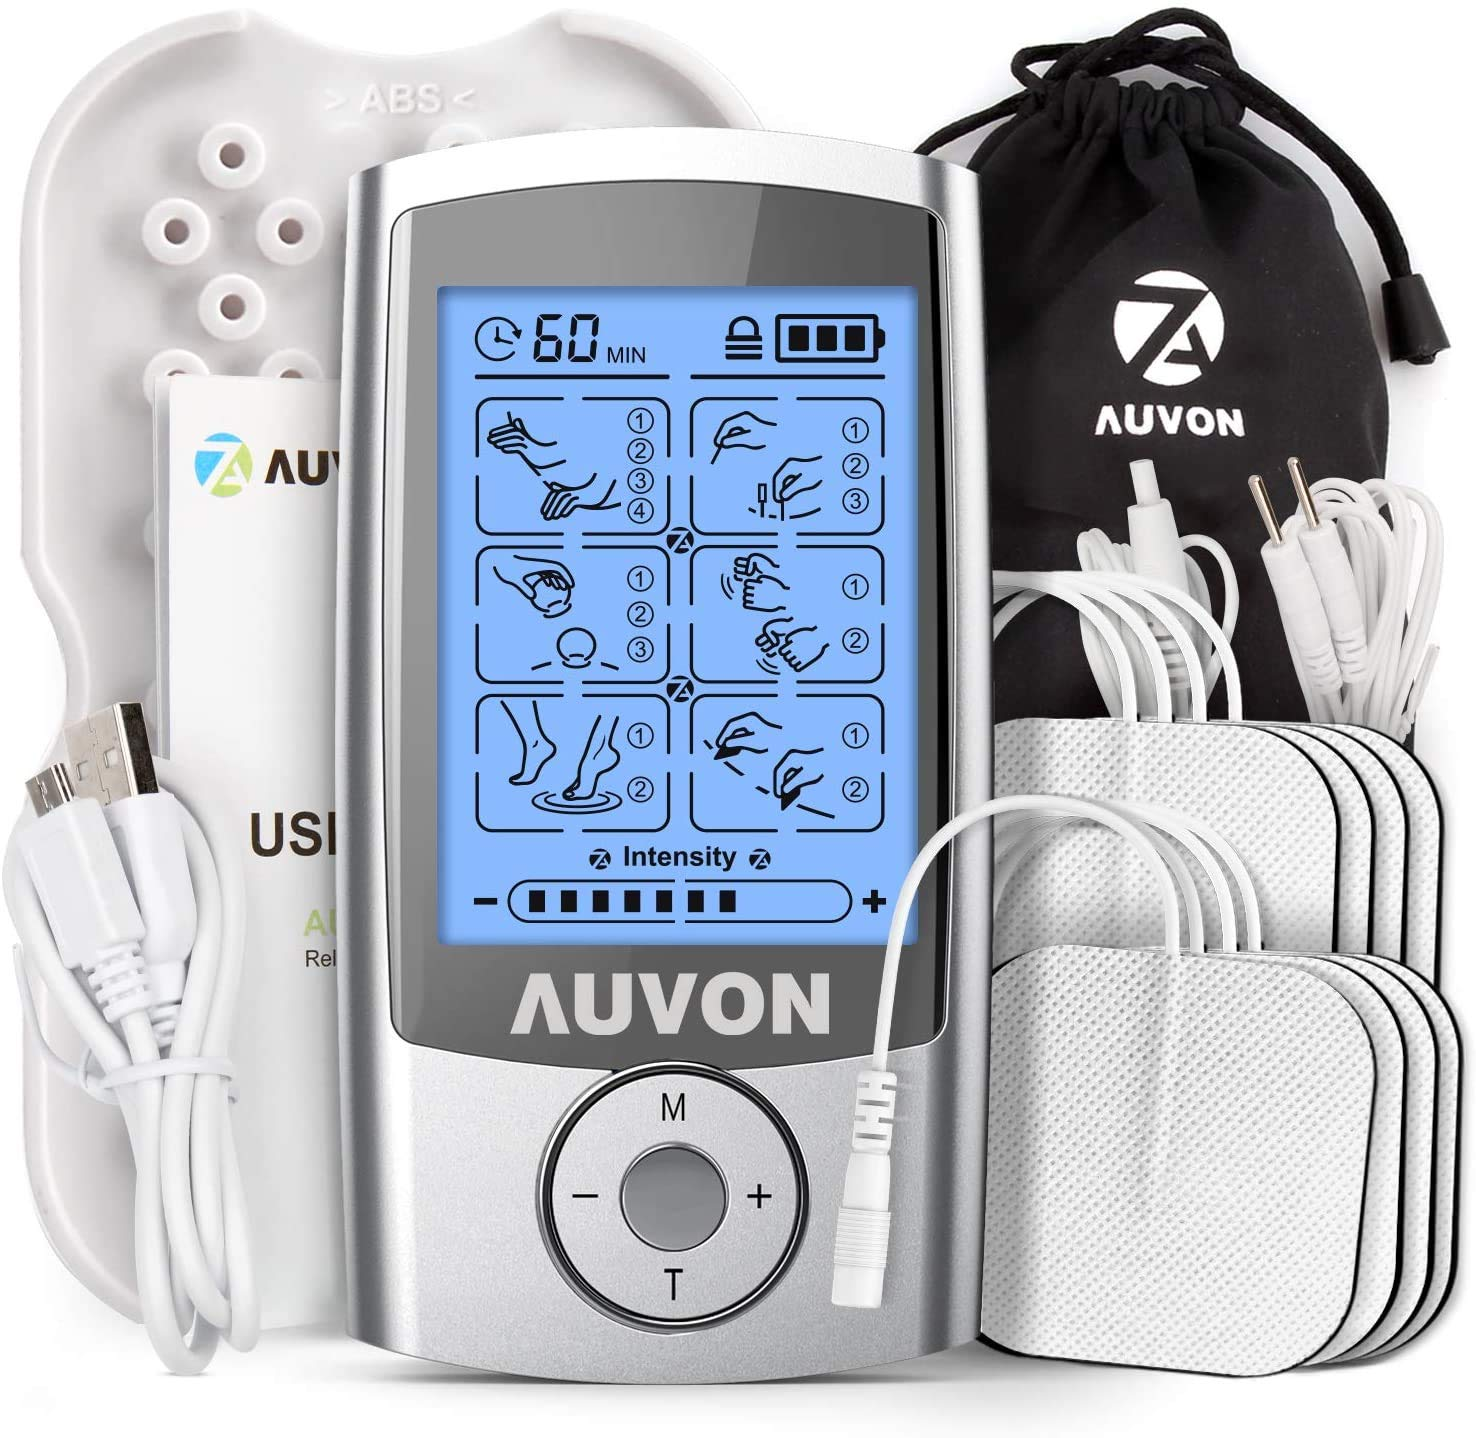 "AUVON Rechargeable TENS Machine Muscle Stimulator for Pain Relief, TENS Unit with 16 Modes, 8pcs 2""x2"" TENS Pads Replacement"